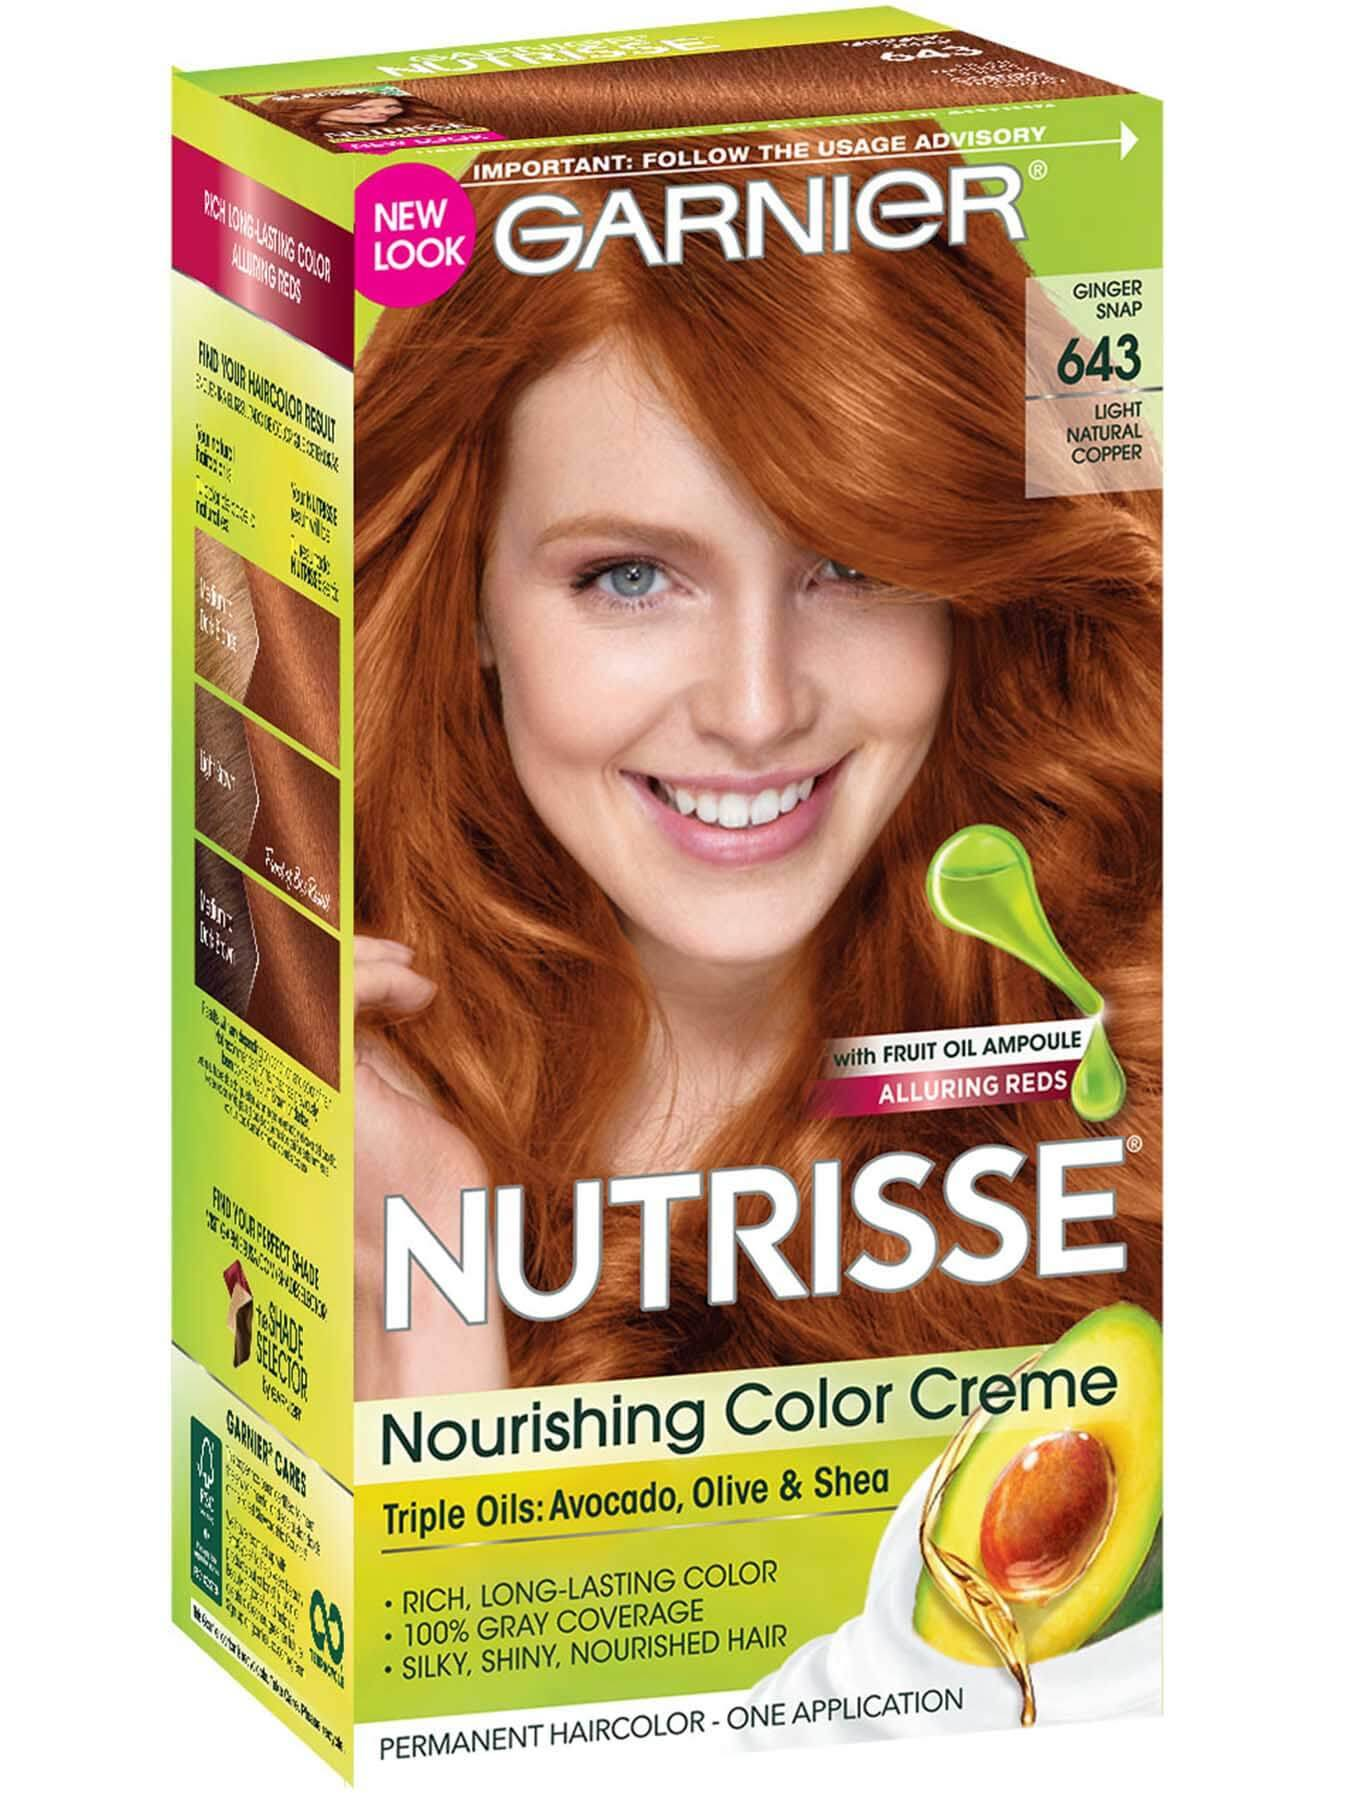 Nutrisse Nourishing Color Creme Light Intense Copper Garnier